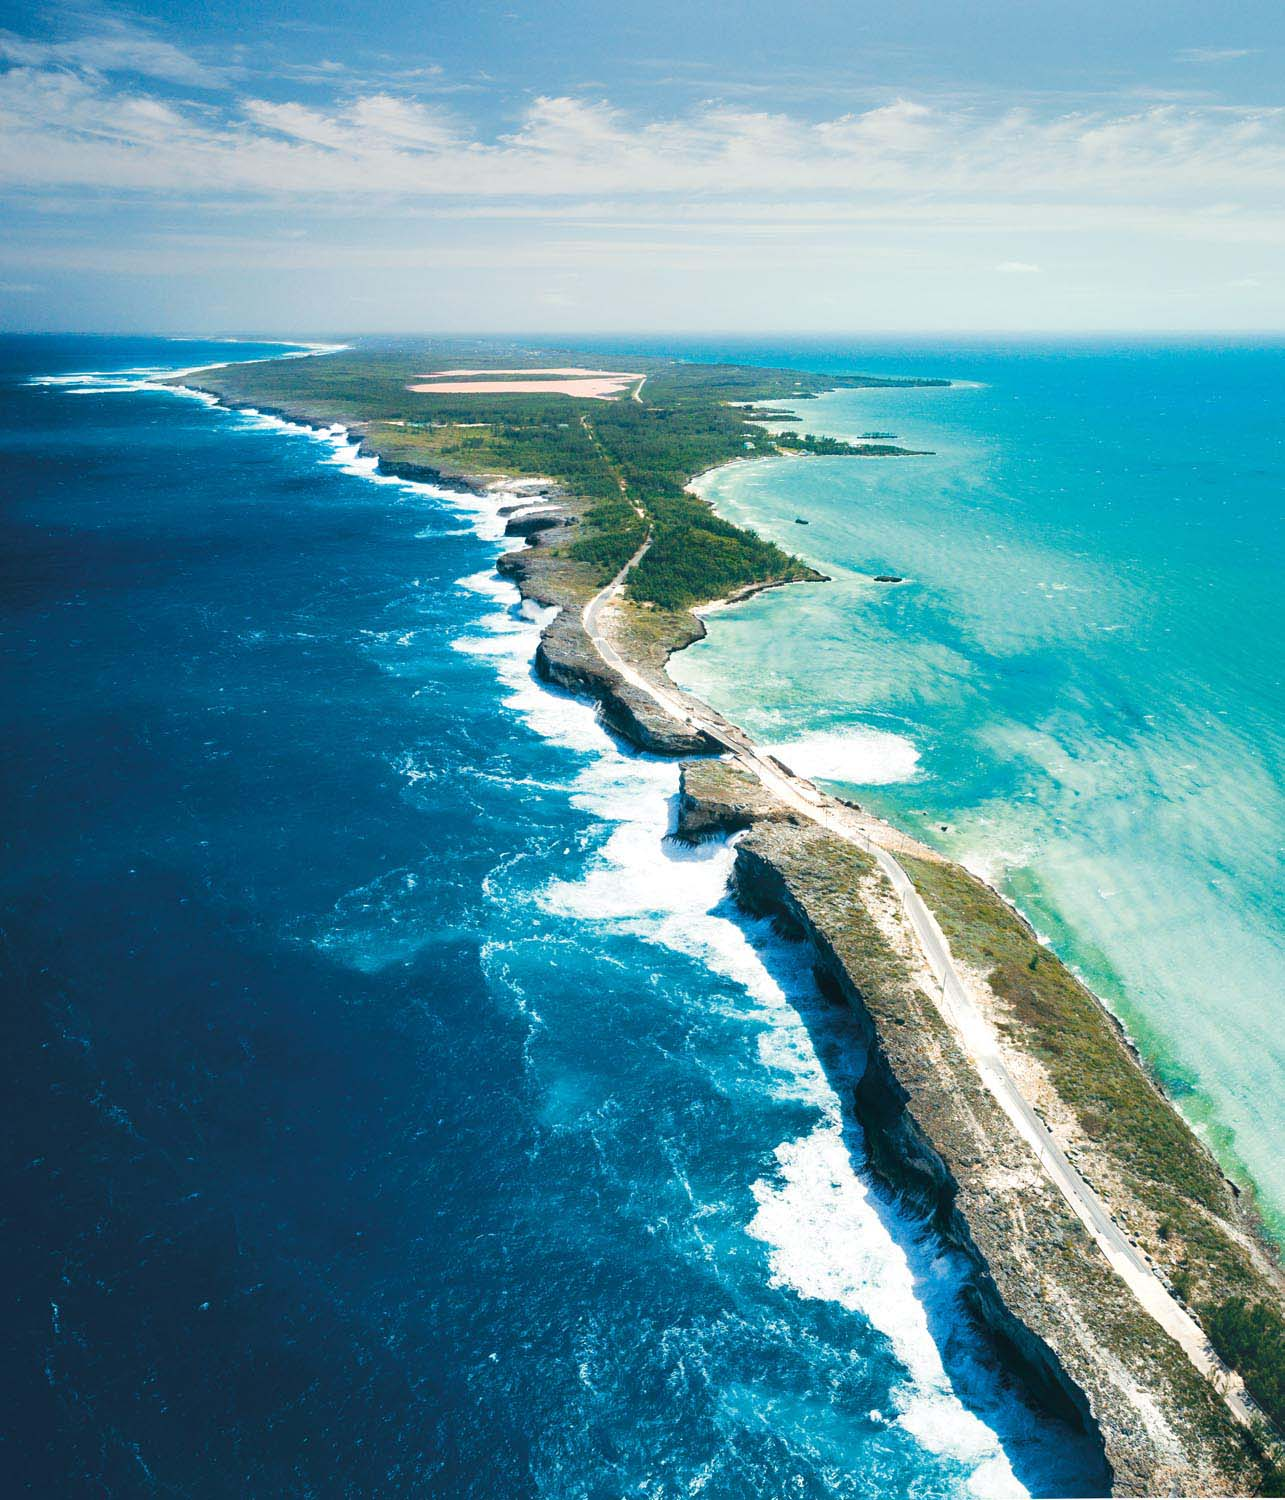 Eleuthera, accessible via a fast ferry from Nassau, is known for its broad pink sand beaches and the natural wonder known as the Glass Window Bridge. Here a narrow peninsula, just thirty feet across at one point, divides the deep blue of the Atlantic from the turquoise shallows of the Bight of Eleuthera. Photo courtesy The Bahamas Ministry of Tourism and Aviation